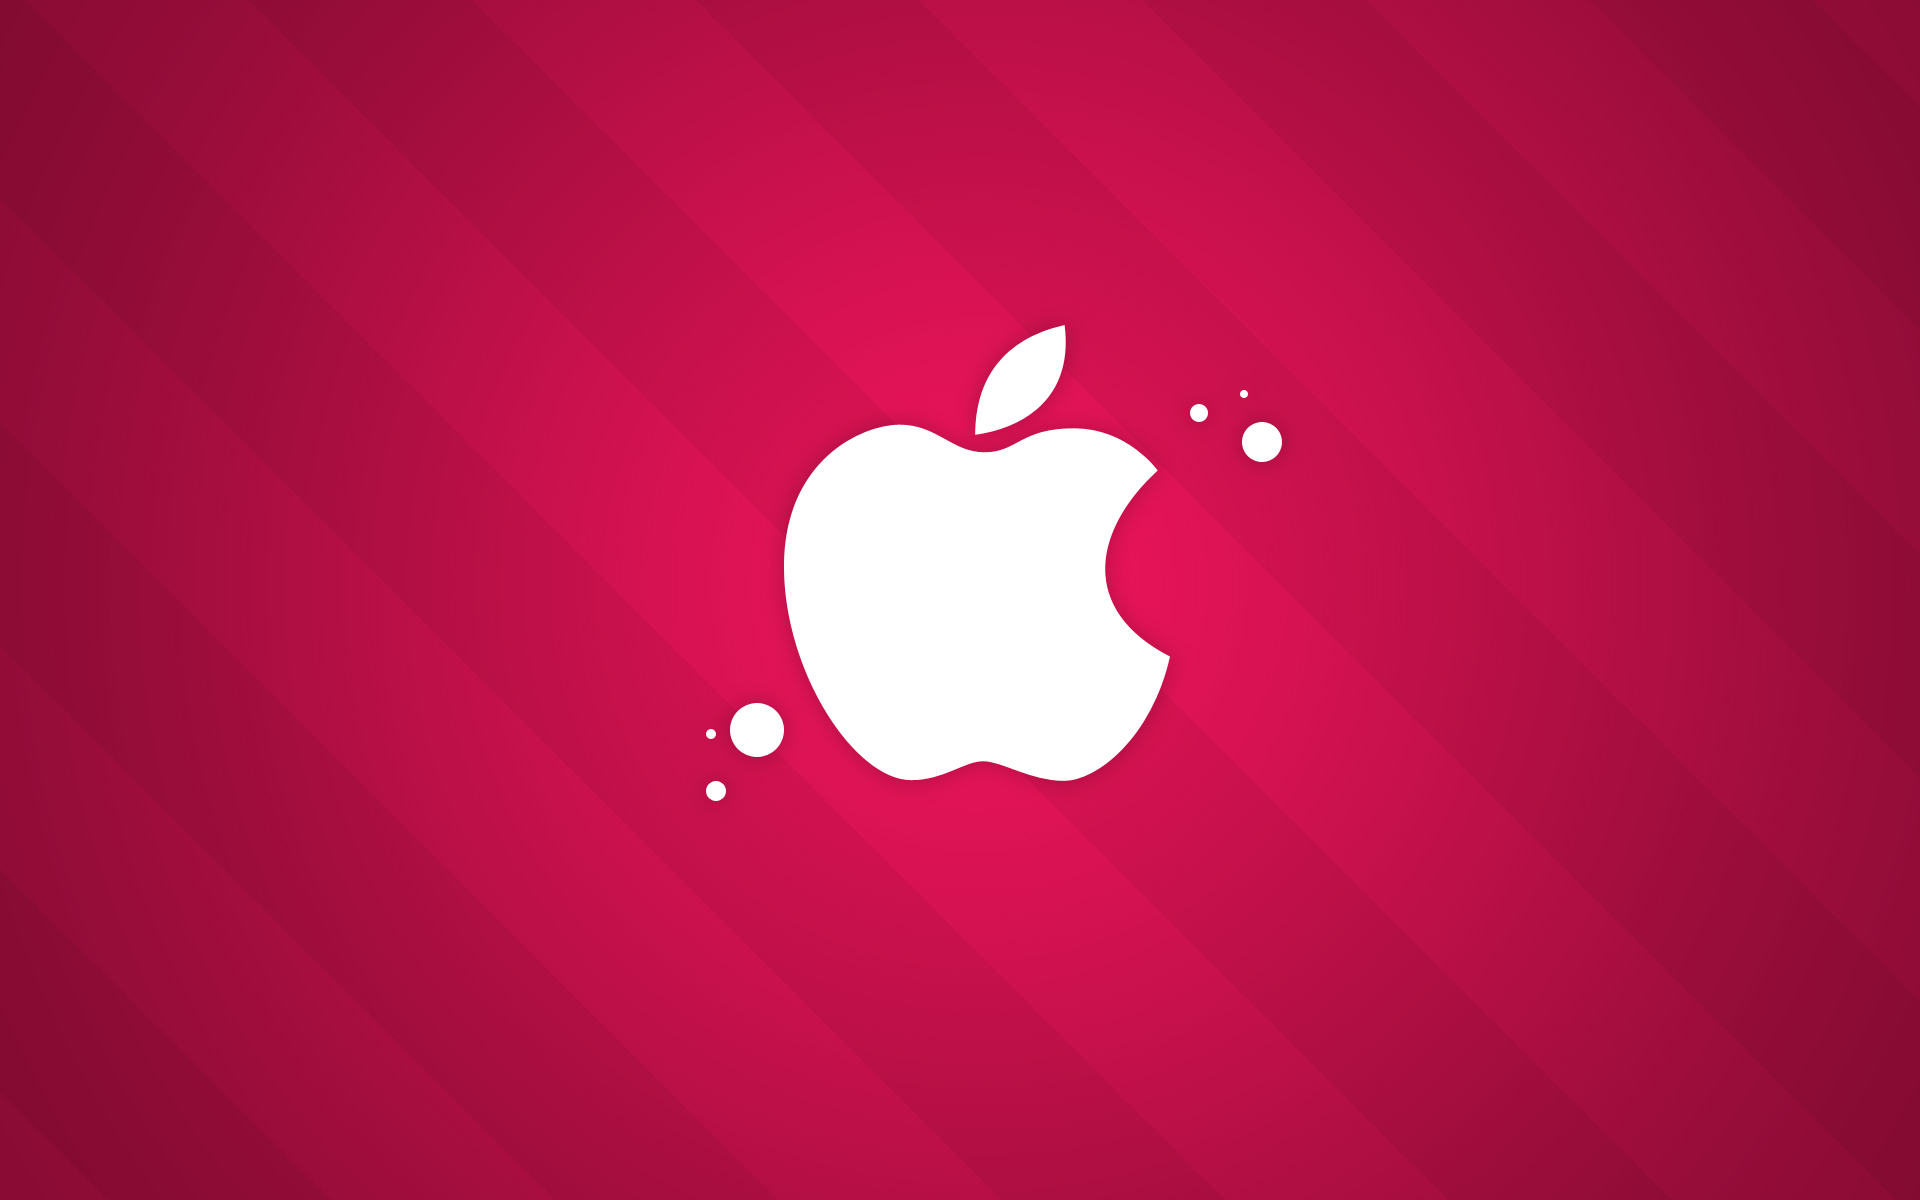 apple pink wallpaper